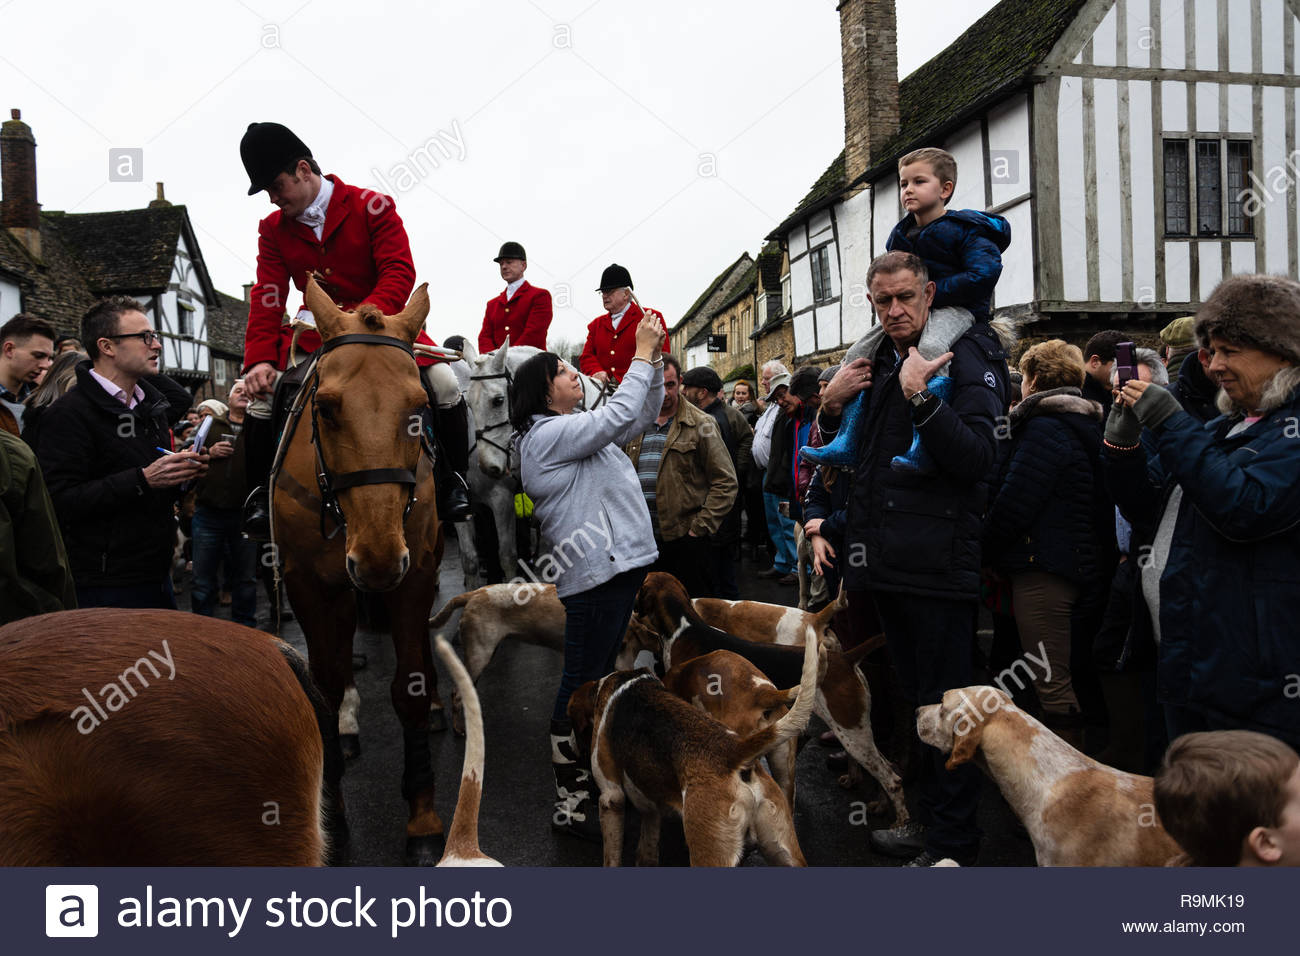 Lacock, Wiltshire, UK. 26th December, 2018. Joint masters and crowd with hounds credit Estelle Bowden/Alamy Live News Stock Photo